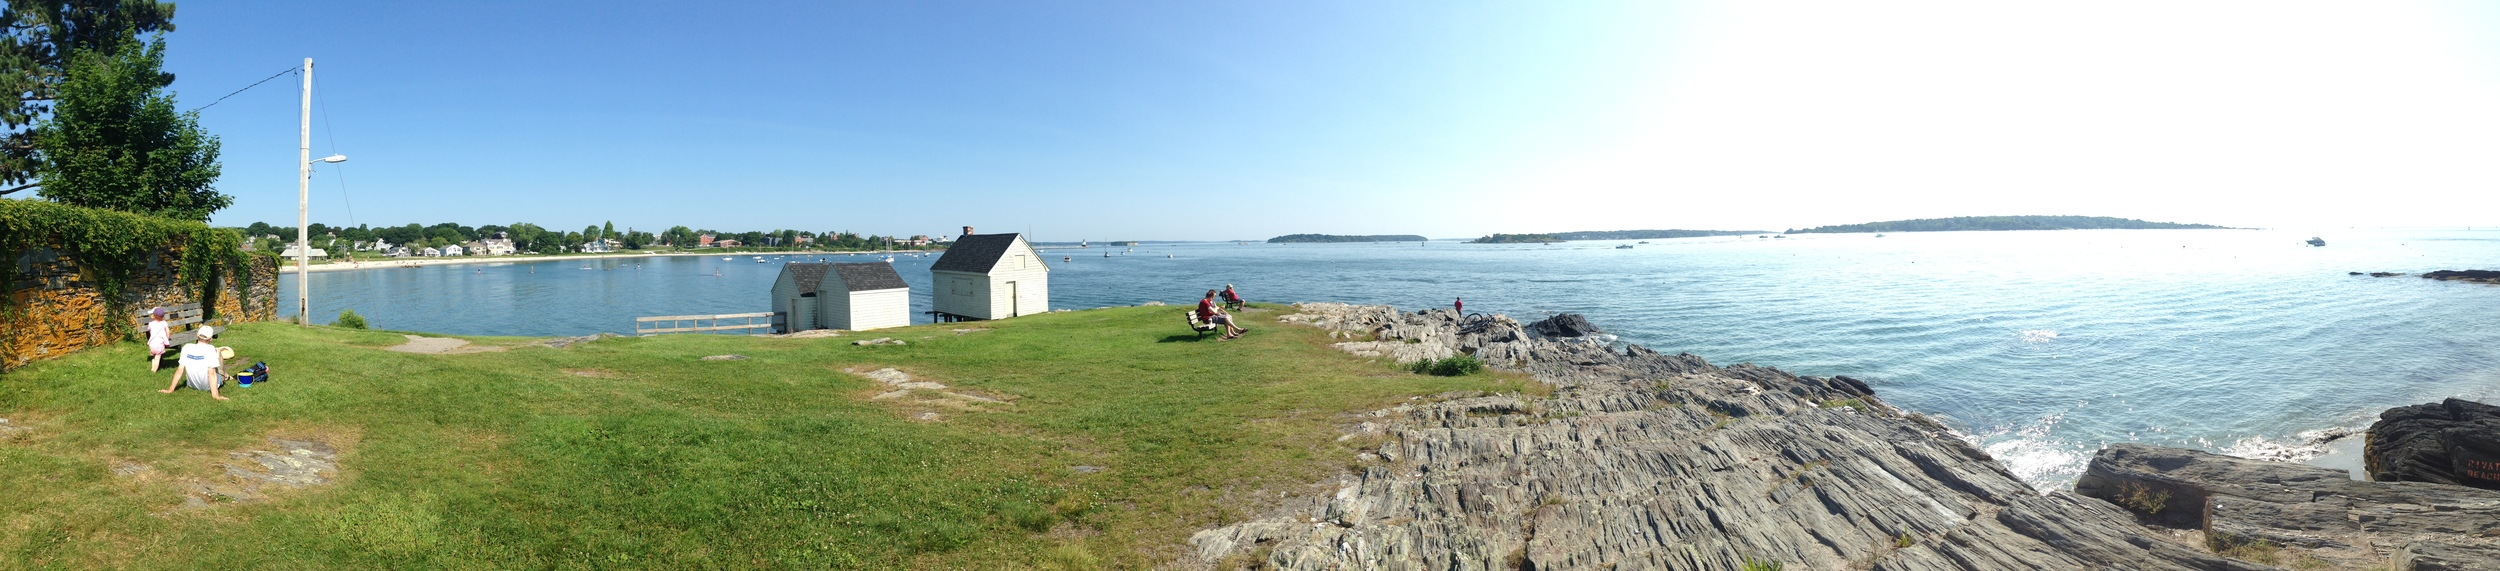 Willard Beach Panorama